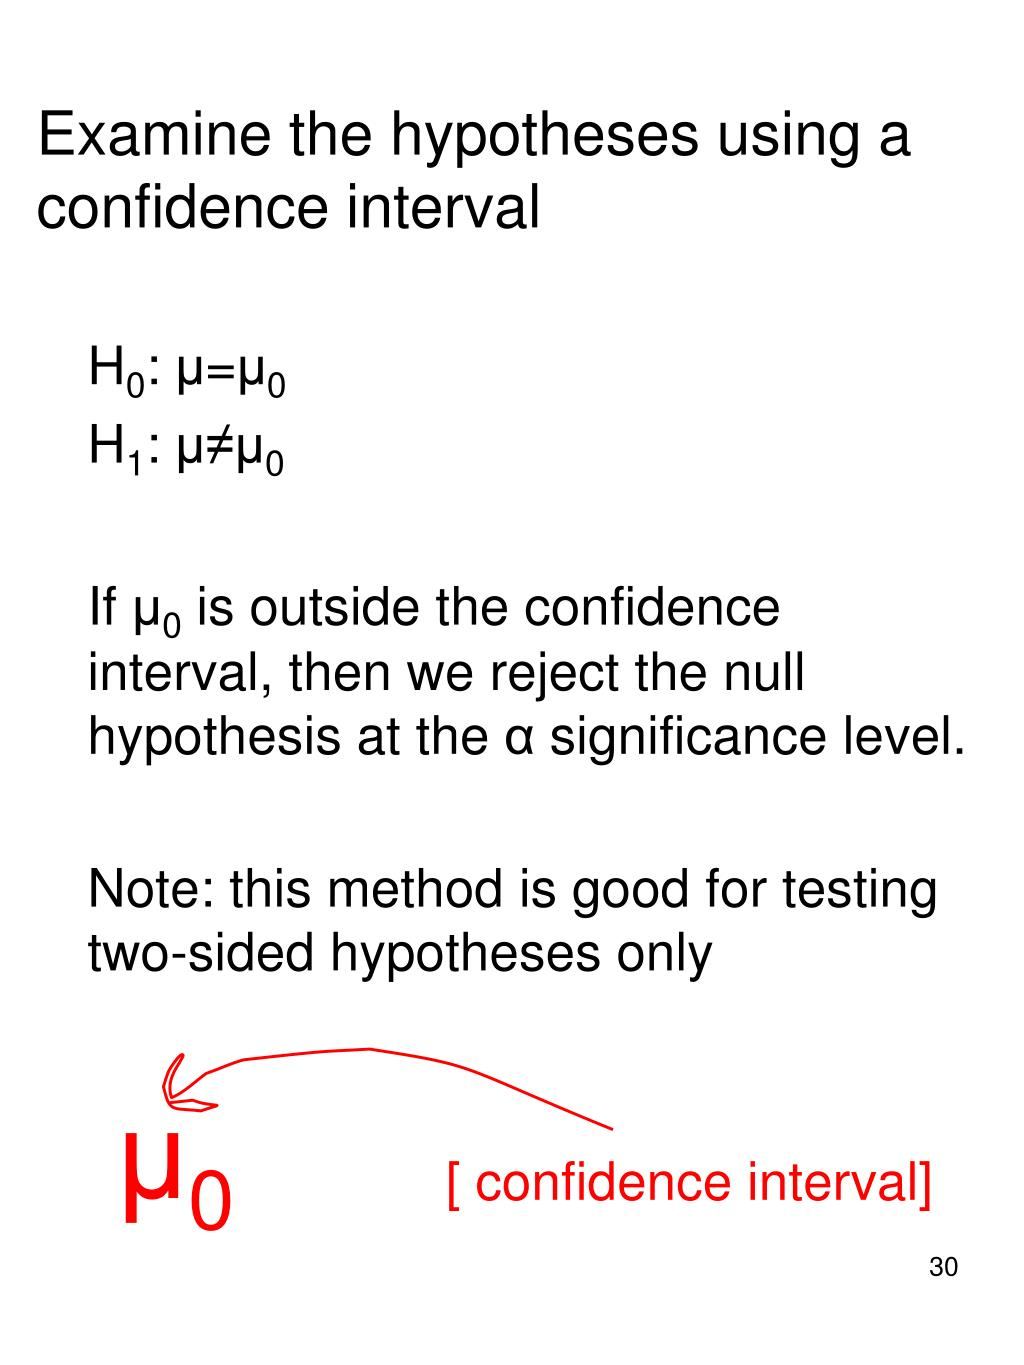 Examine the hypotheses using a confidence interval